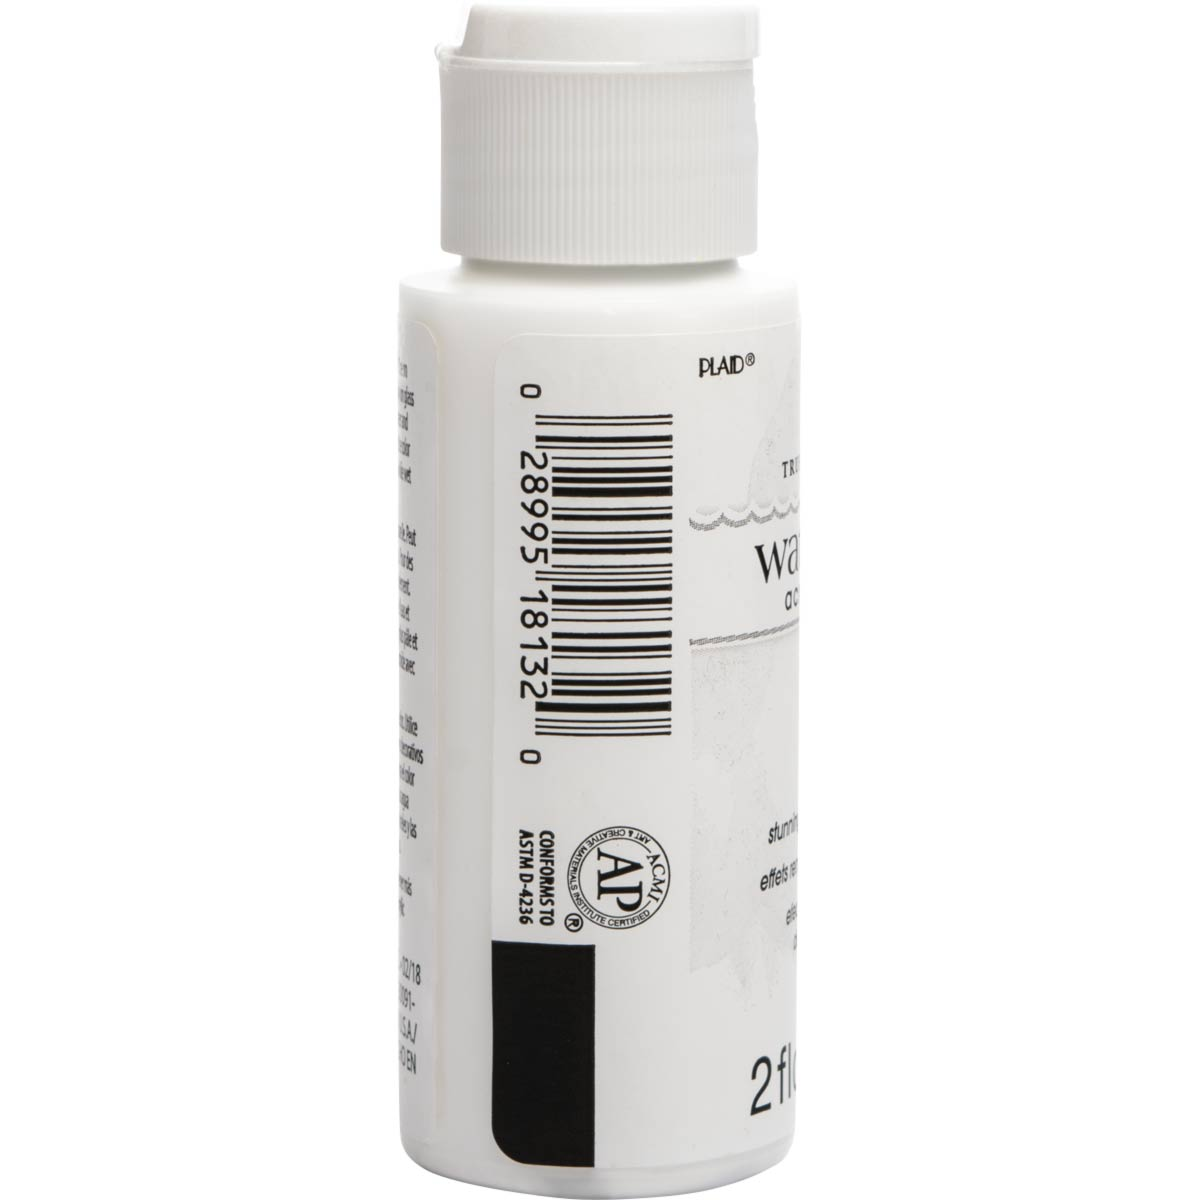 FolkArt ® Watercolor Acrylic Paint™ - White, 2 oz. - 18132